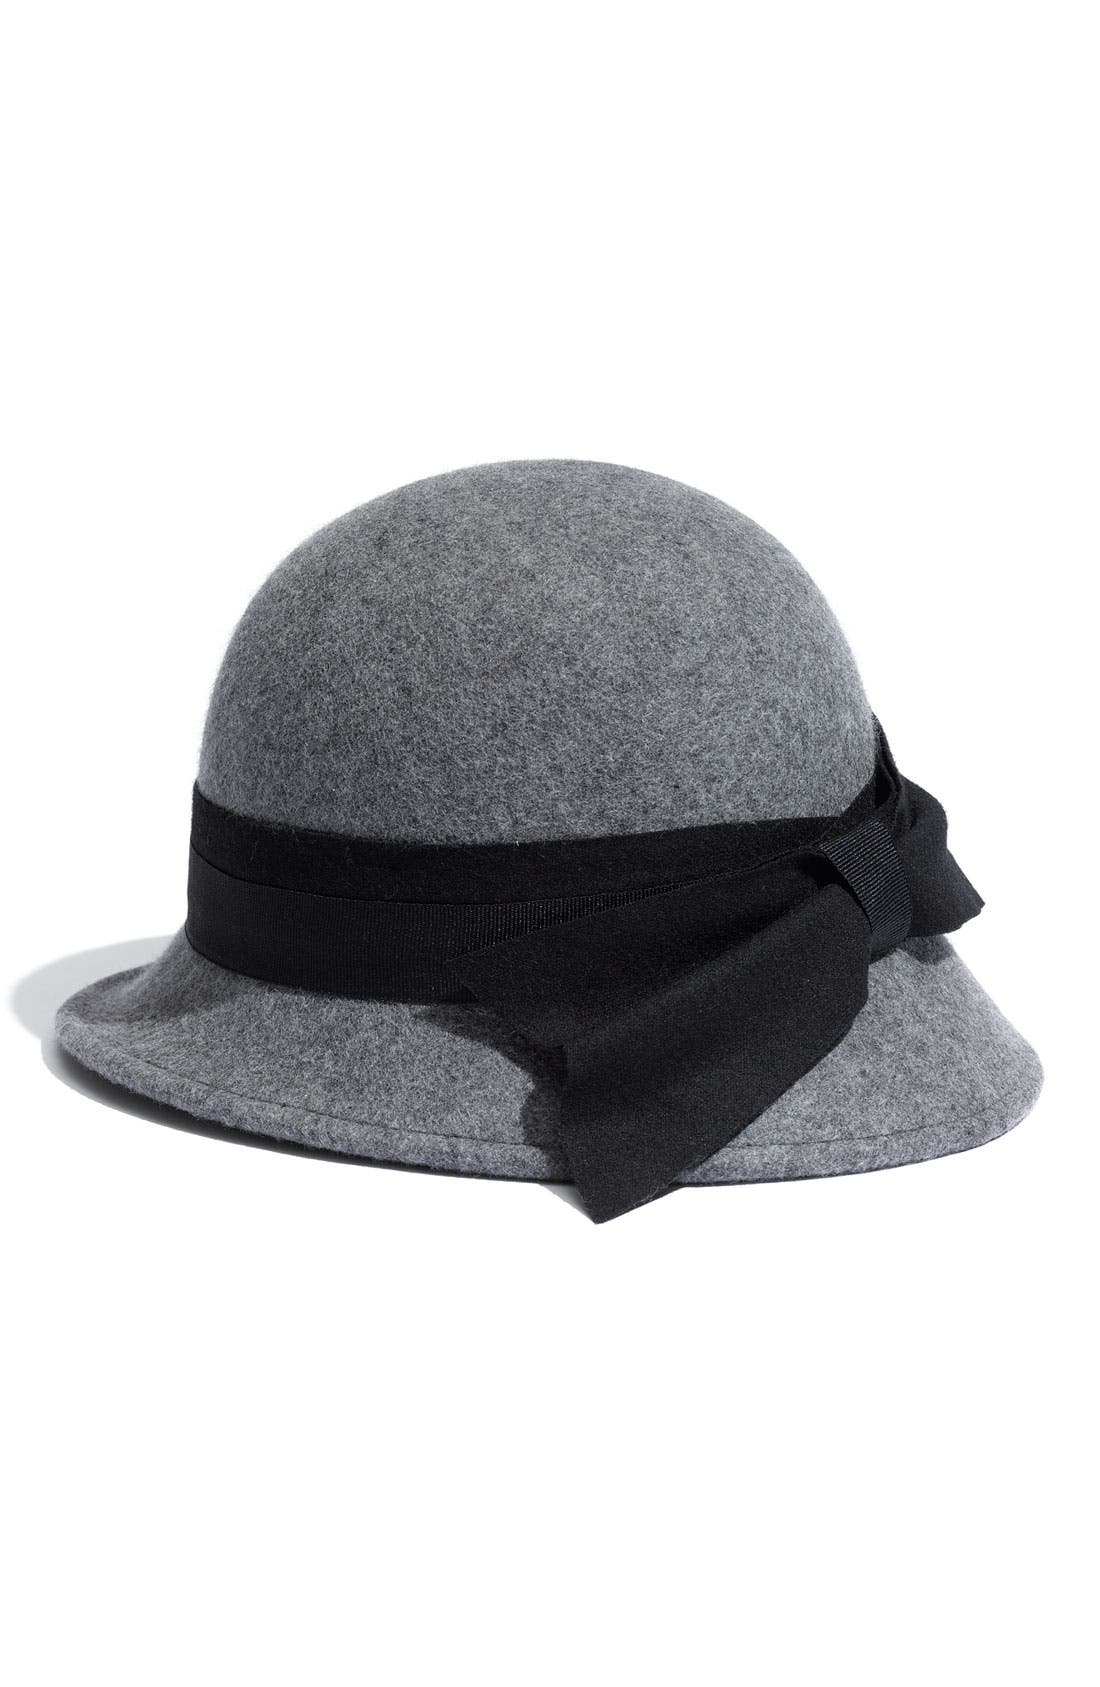 Main Image - Nordstrom Side Bow Cloche